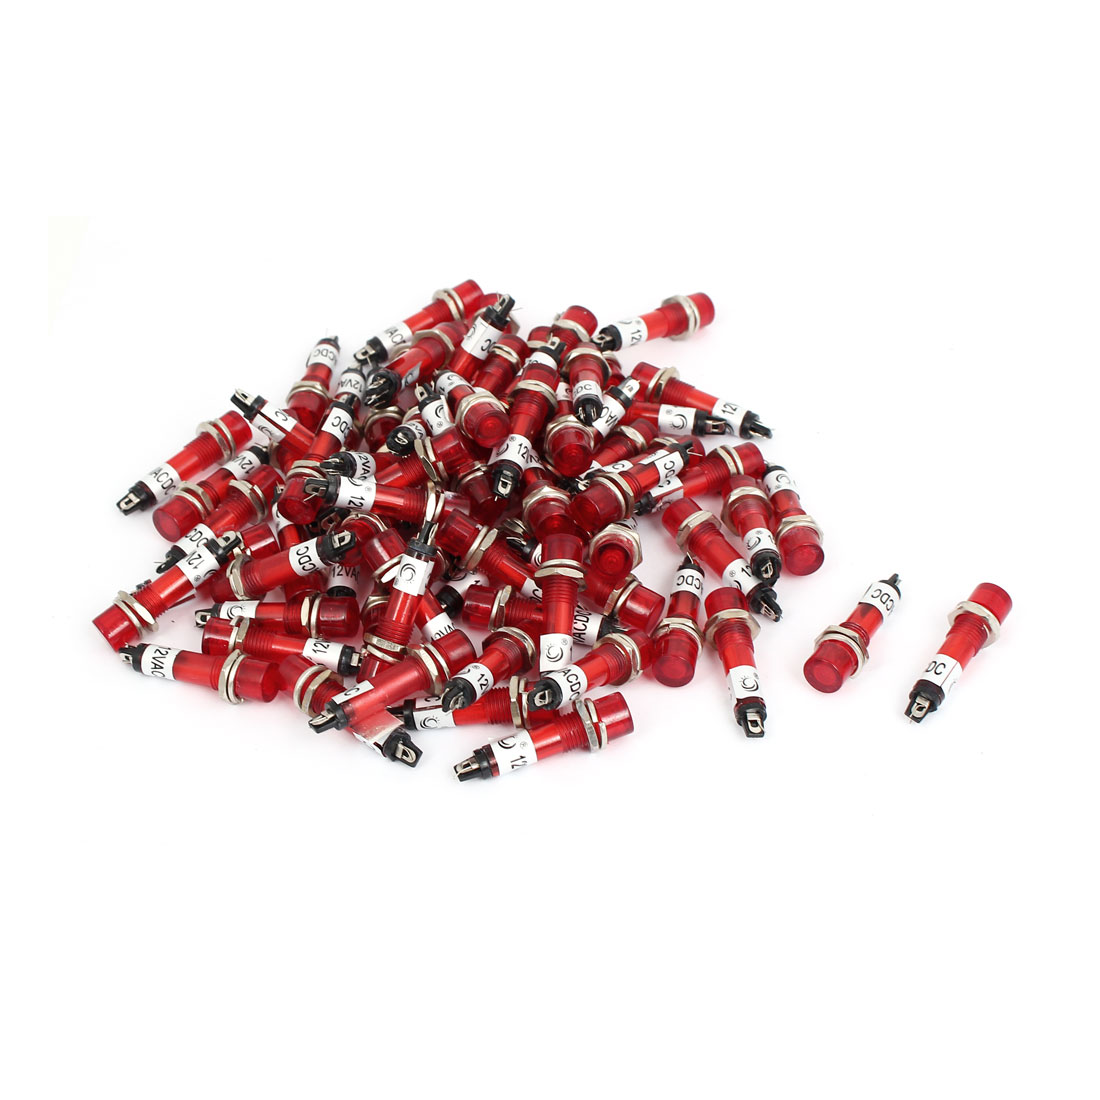 DC 12V 2 Terminals Threaded Light Signal Indicator Lamp Red 100 Pcs